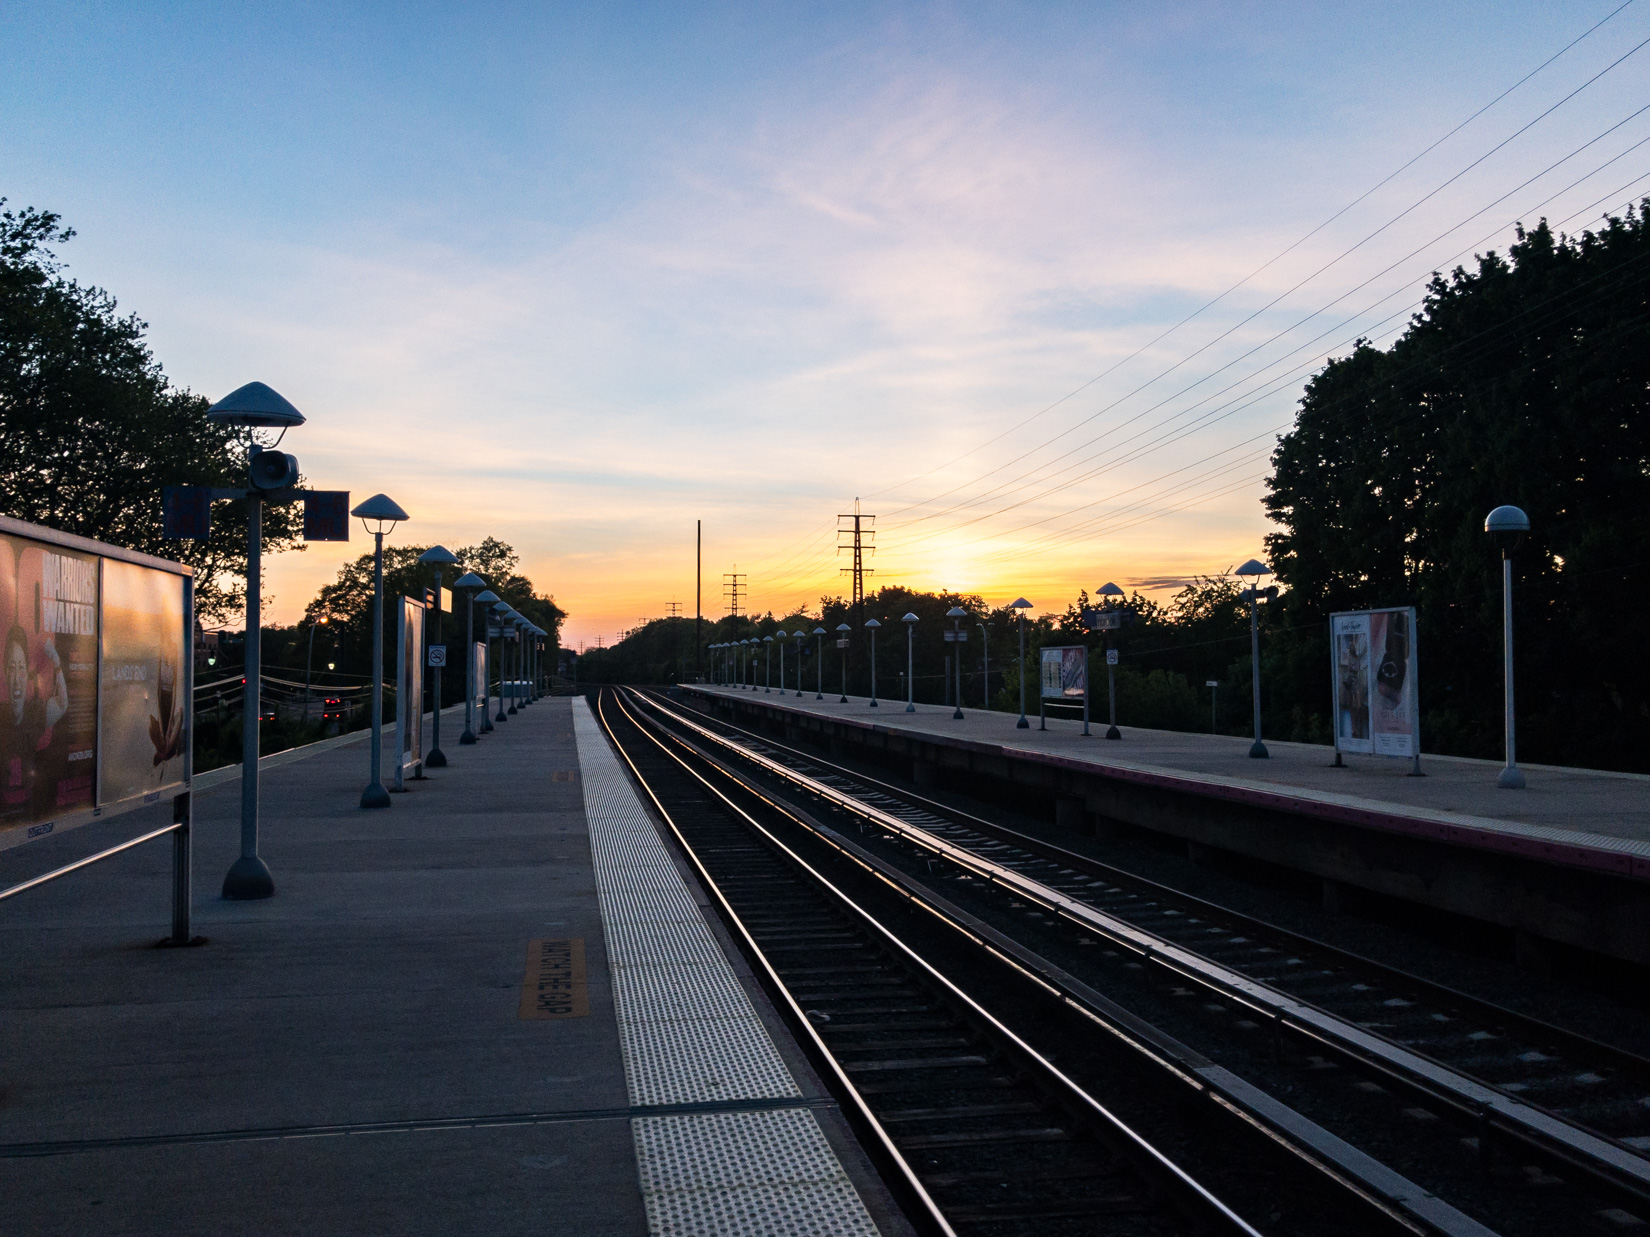 Sunset Over Train Platform and Tracks